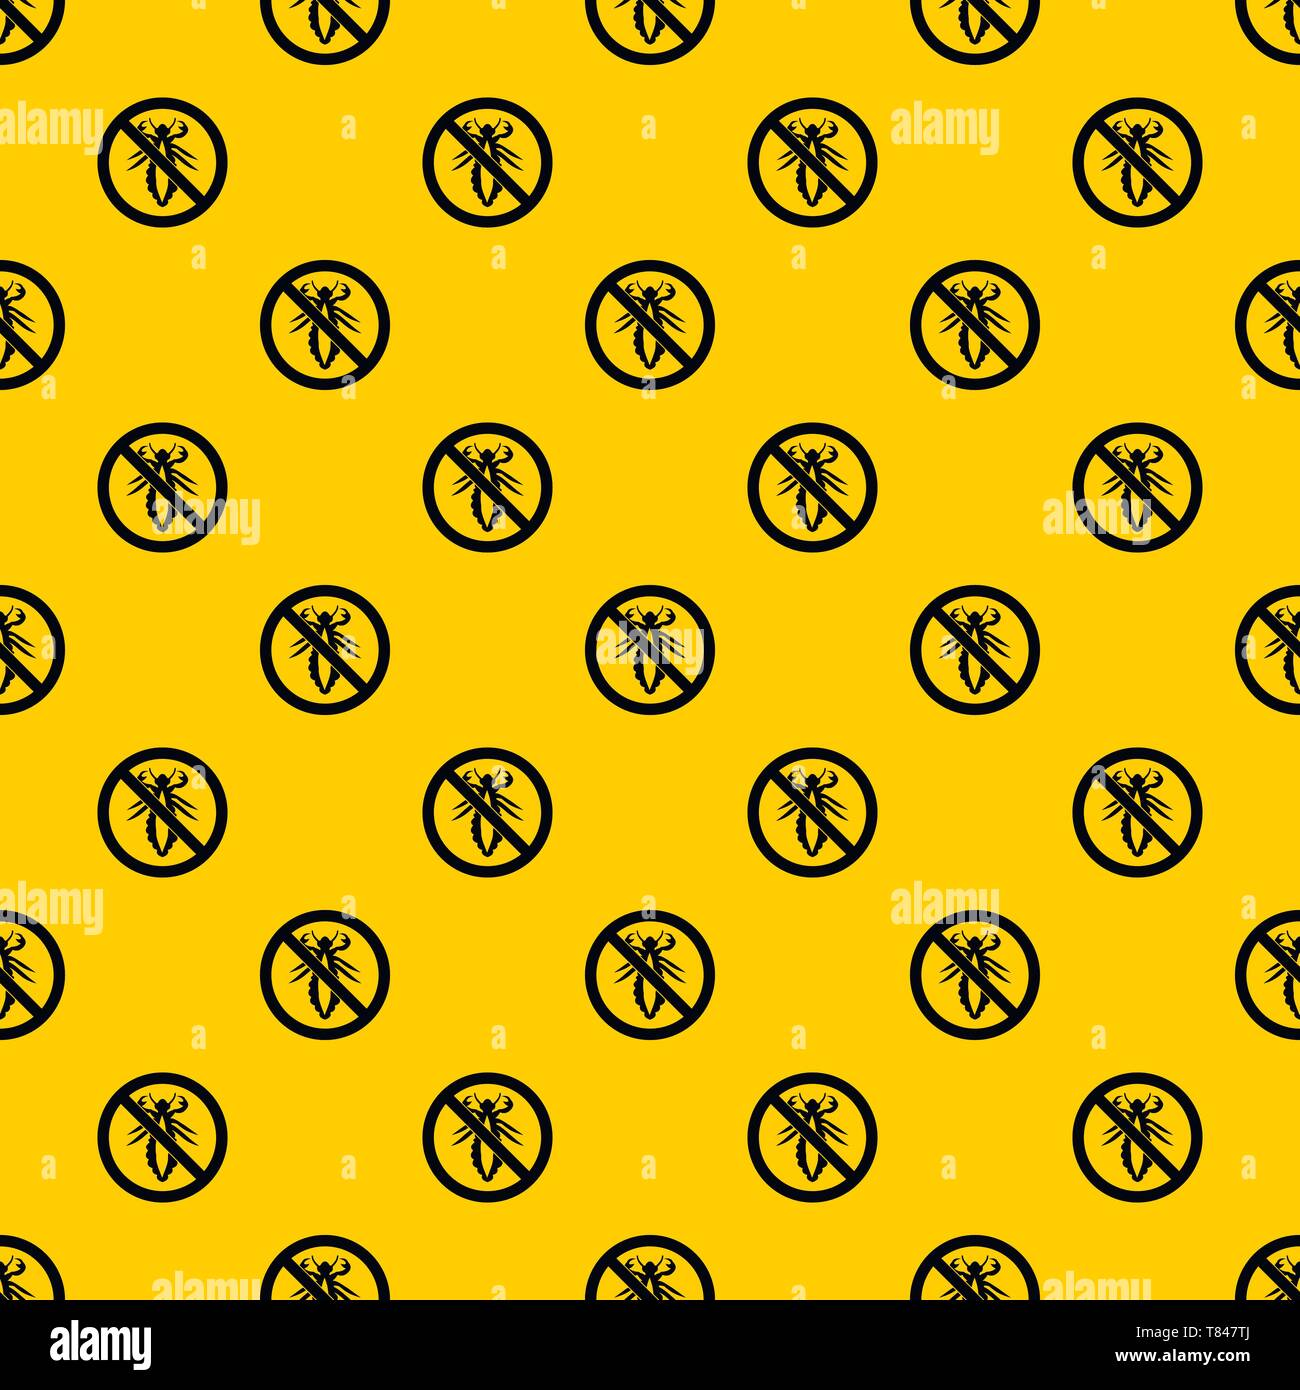 No louse sign pattern vector - Stock Image